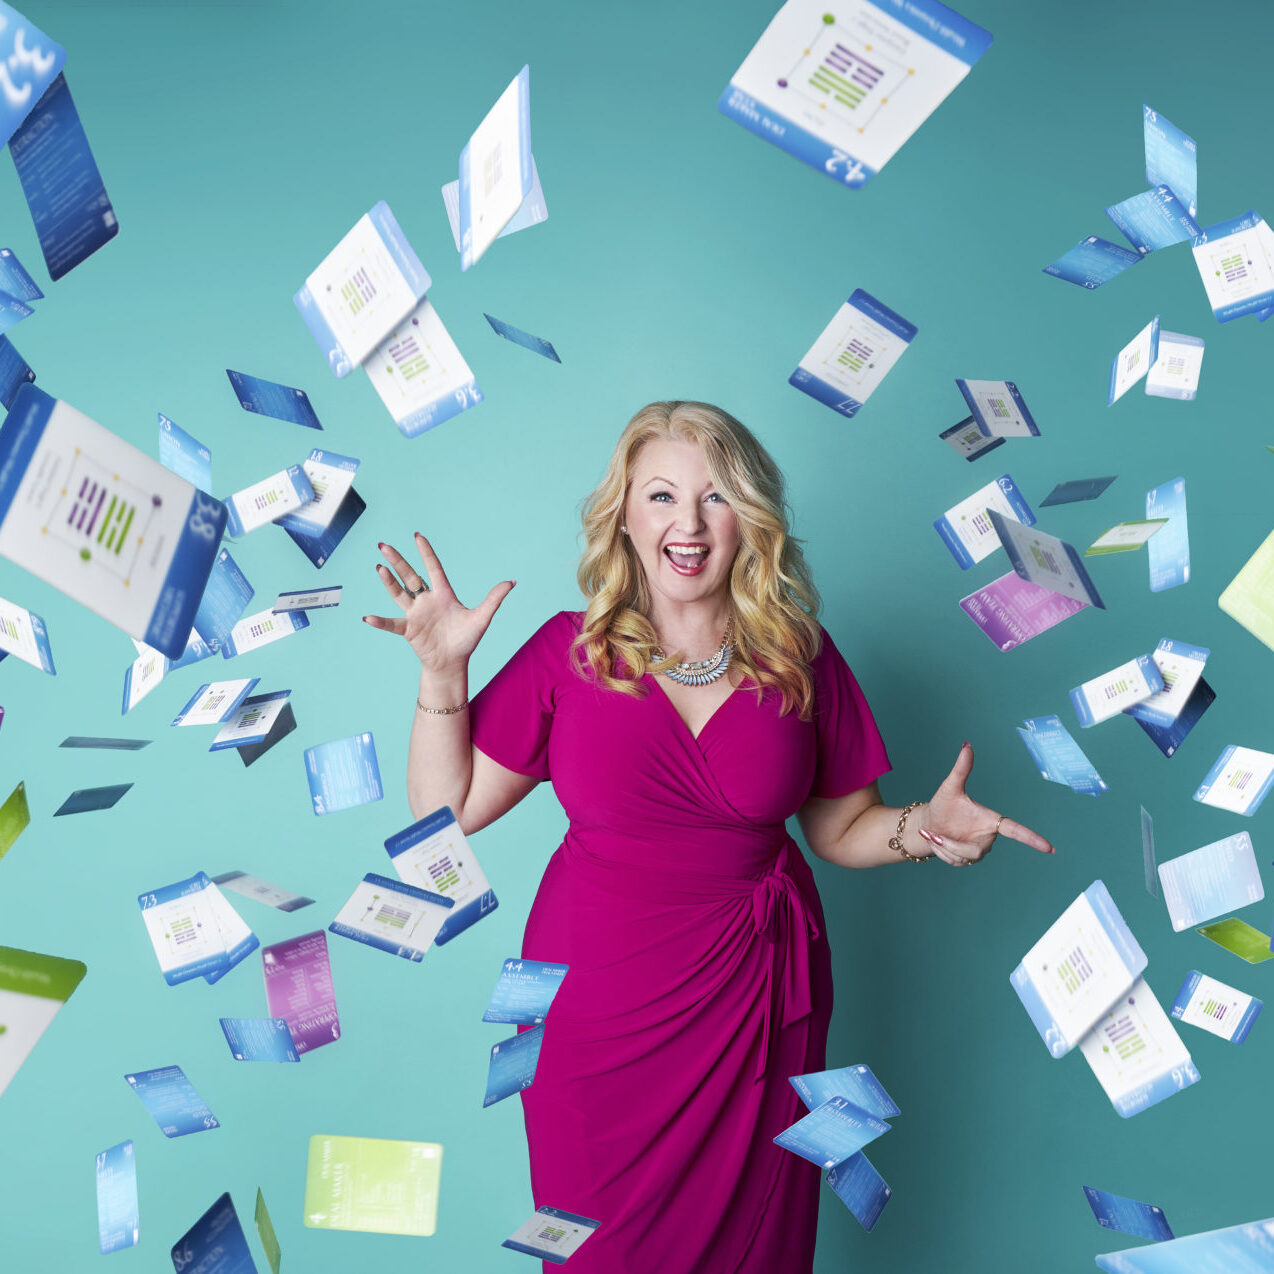 free resources for business owners - NewSky Consulting - A photo of Katrina Johnson in a pink dress with cards flying through the air